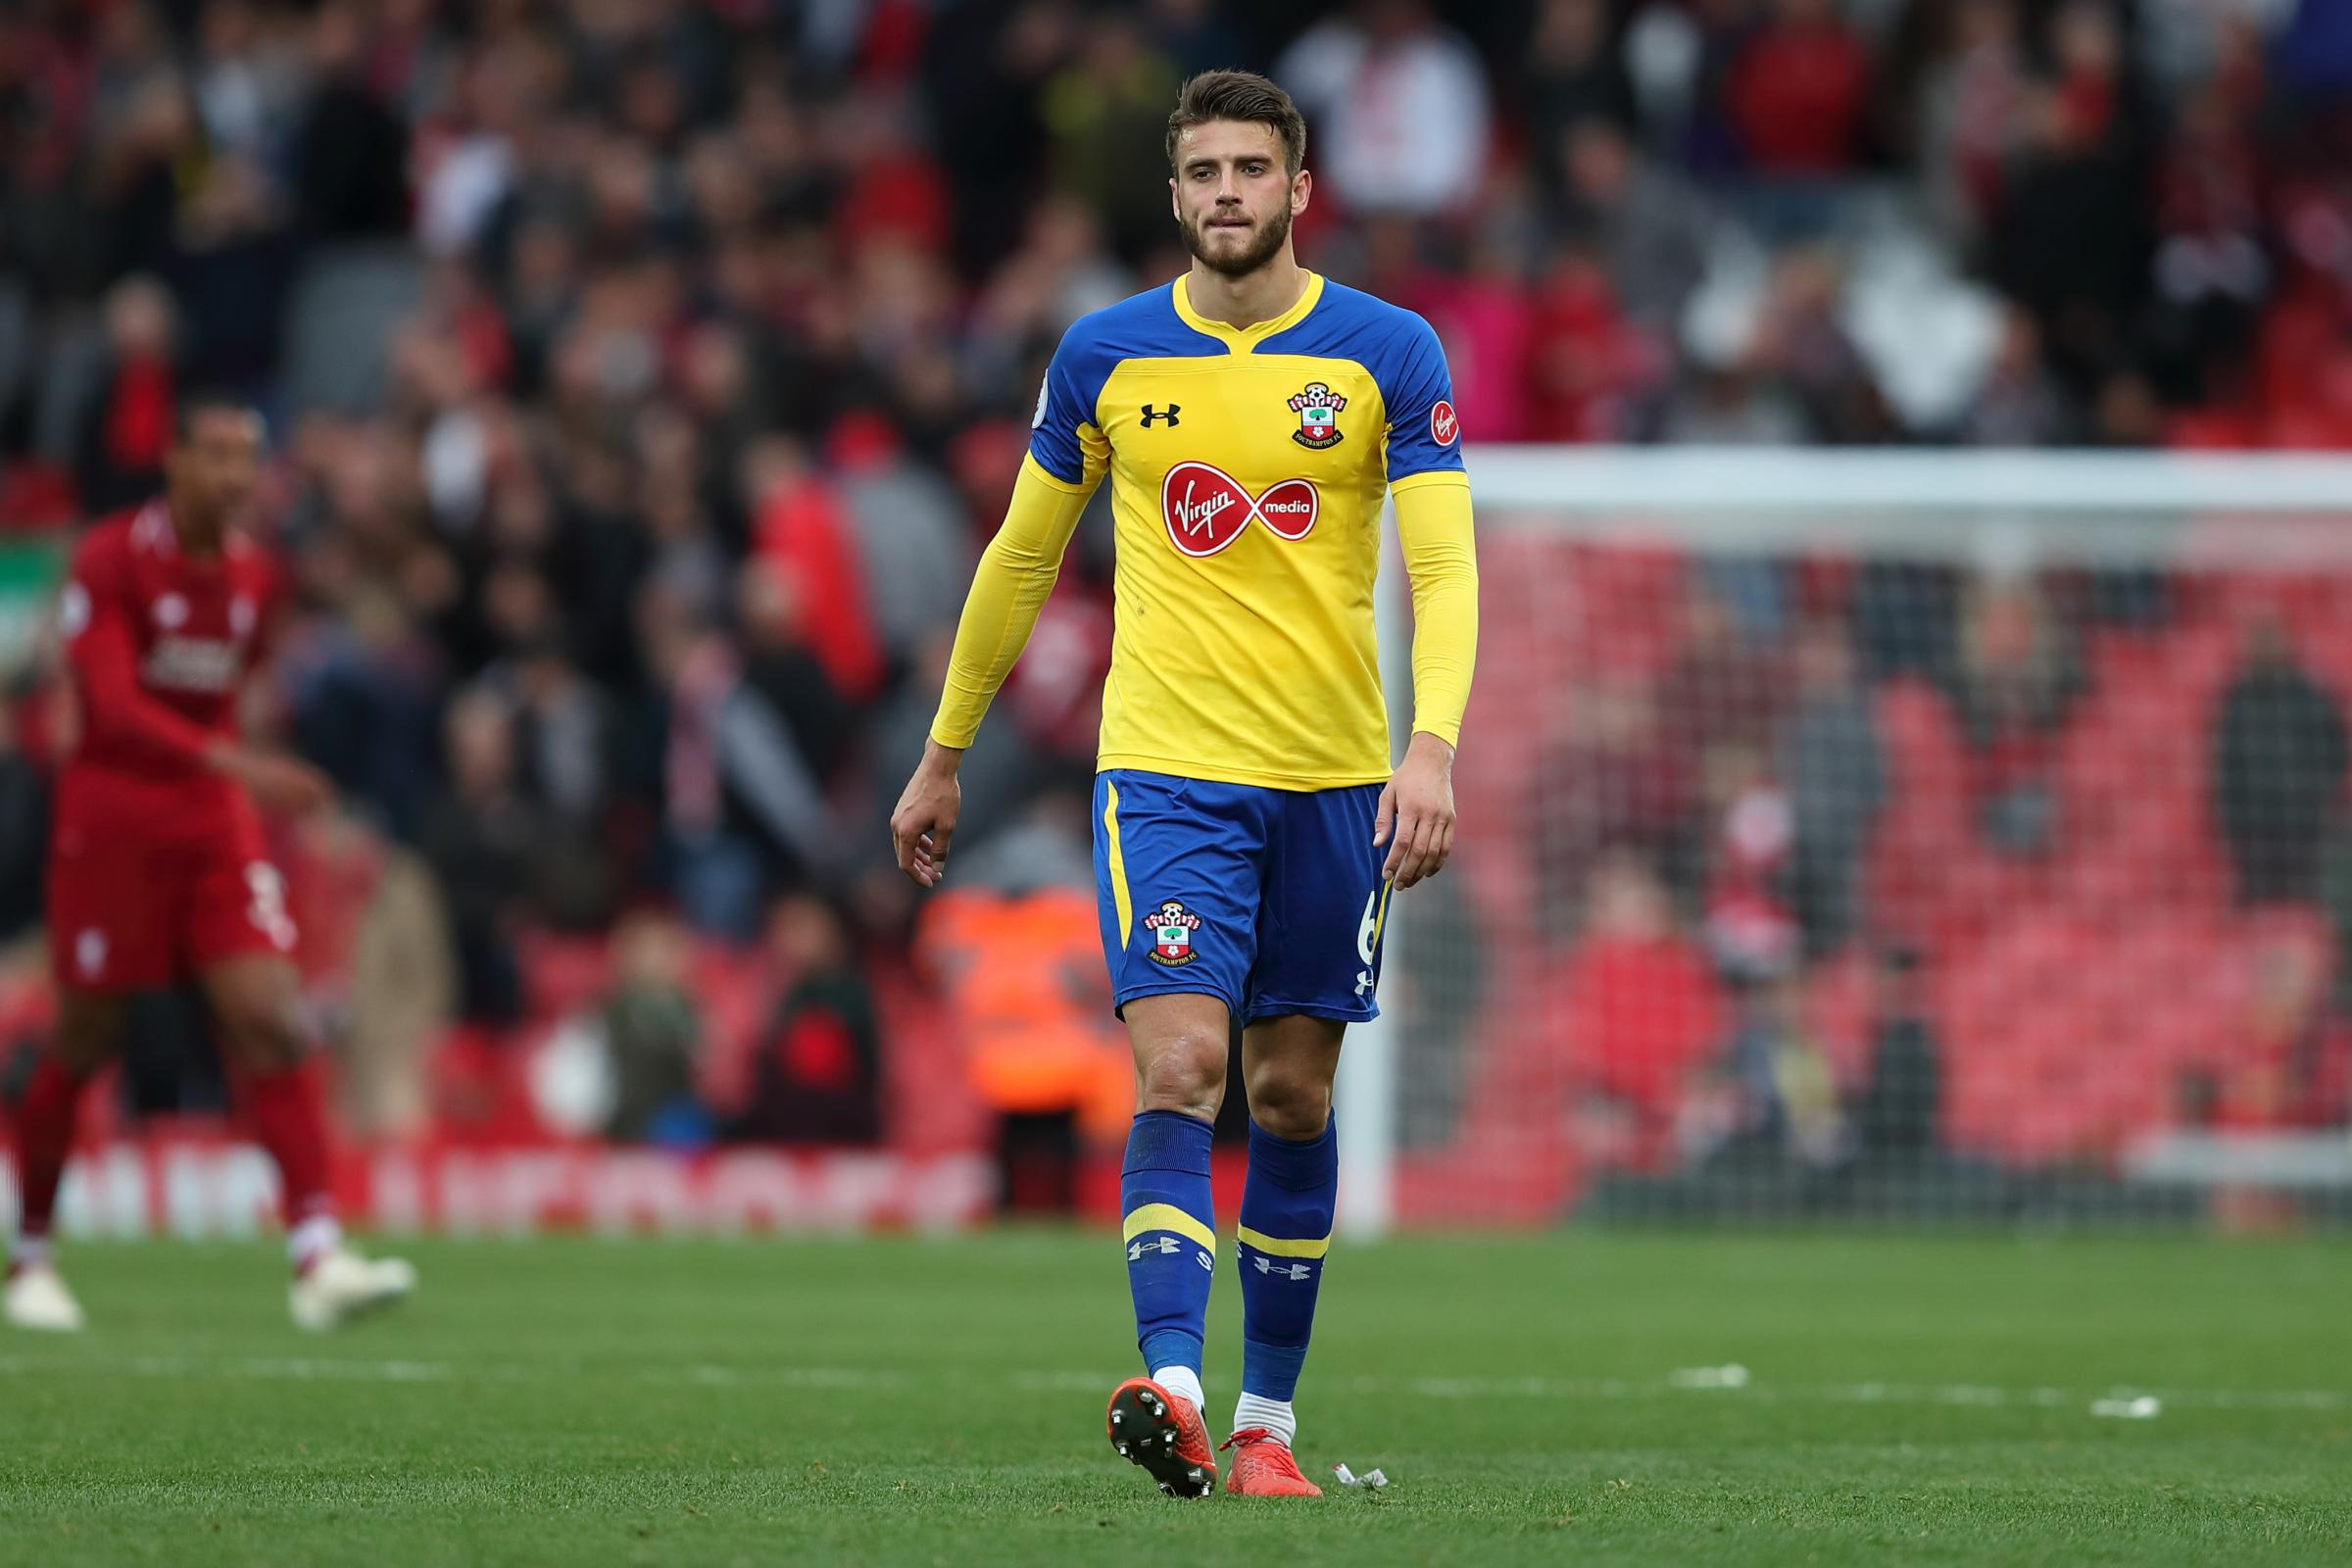 Liverpool vs Southampton, FA Premier League, Anfield, 22nd September 2018 - Wesley Hoedt of Southampton.